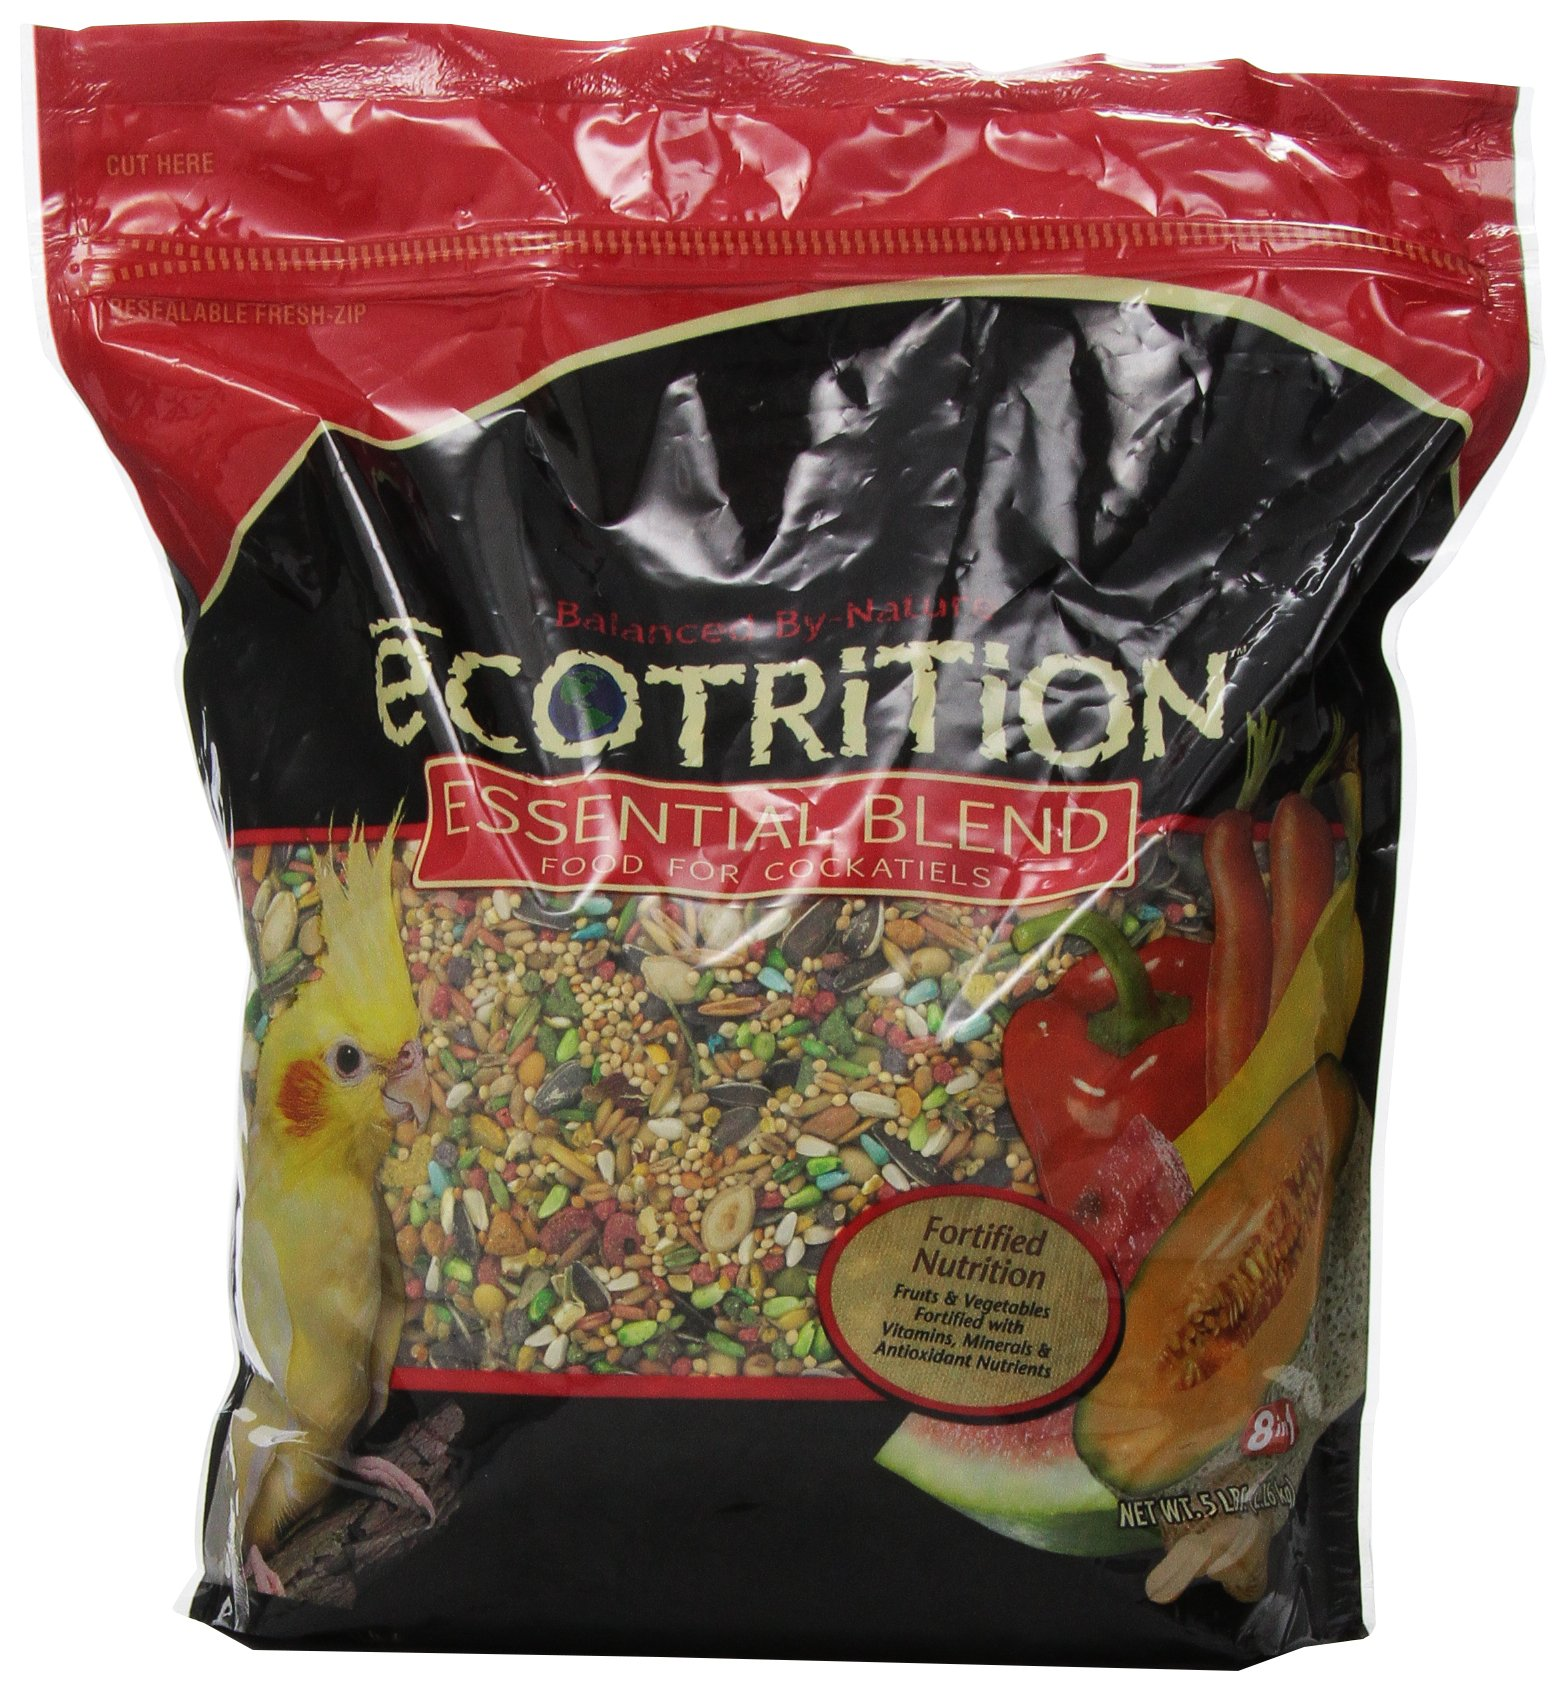 Ecotrition Essential Blend Food For Cockatiels, 5 Pounds, Resealable Bag